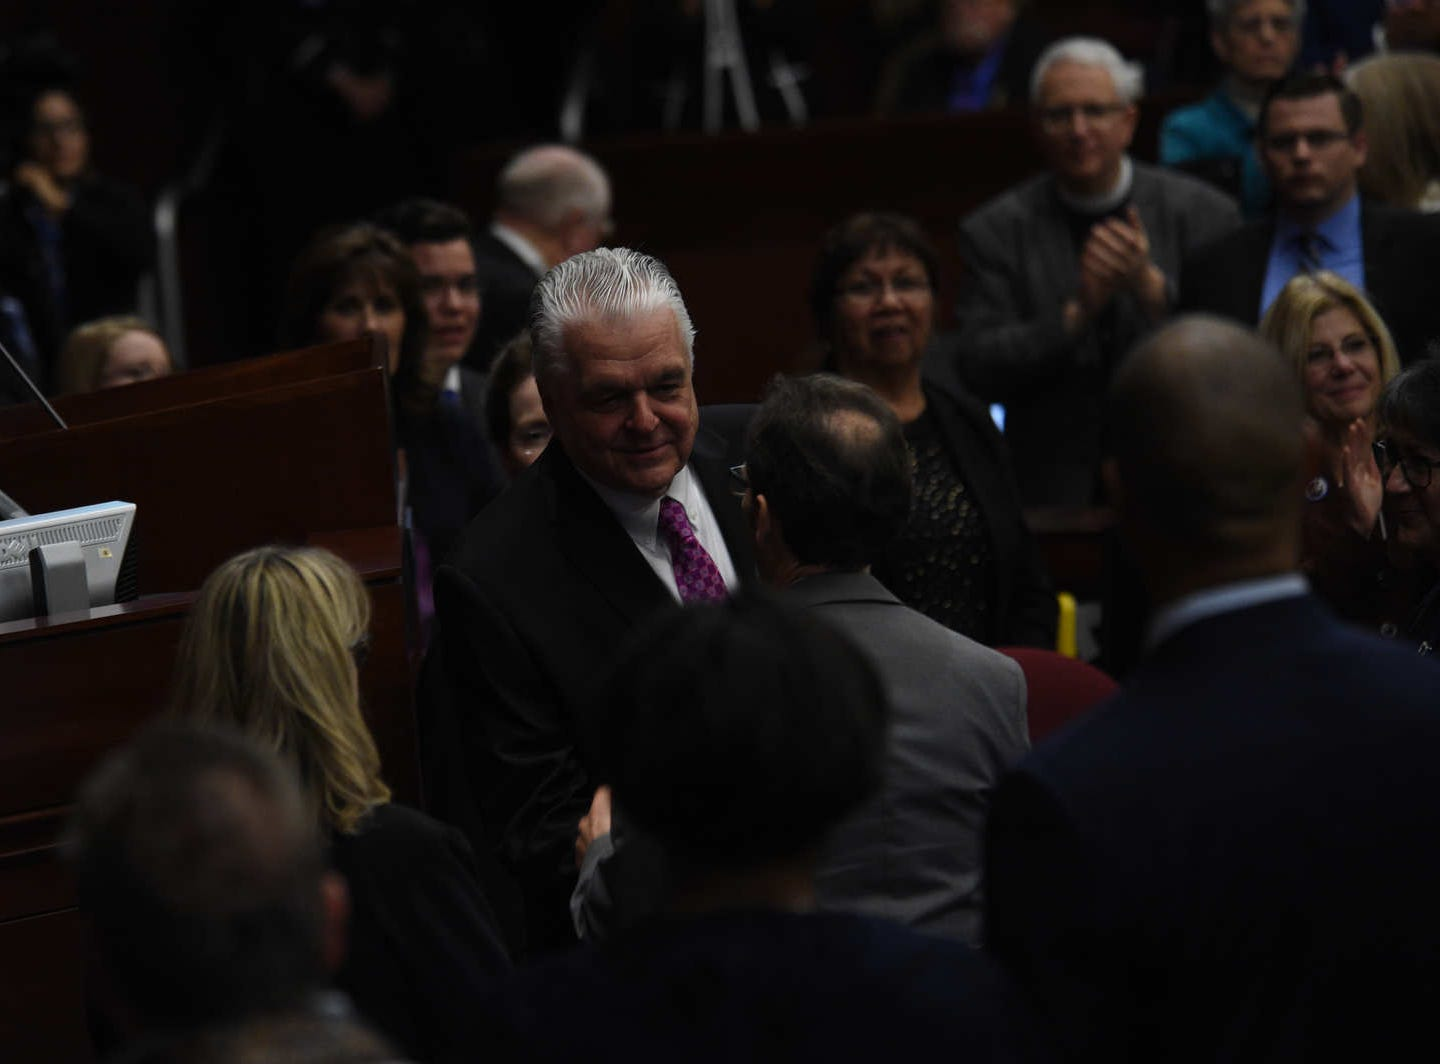 Governor of Nevada Steve Sisolak delivers his first State of the State address in the Assembly Chambers in the Nevada Legislative Building in Carson City on Jan. 16, 2019.